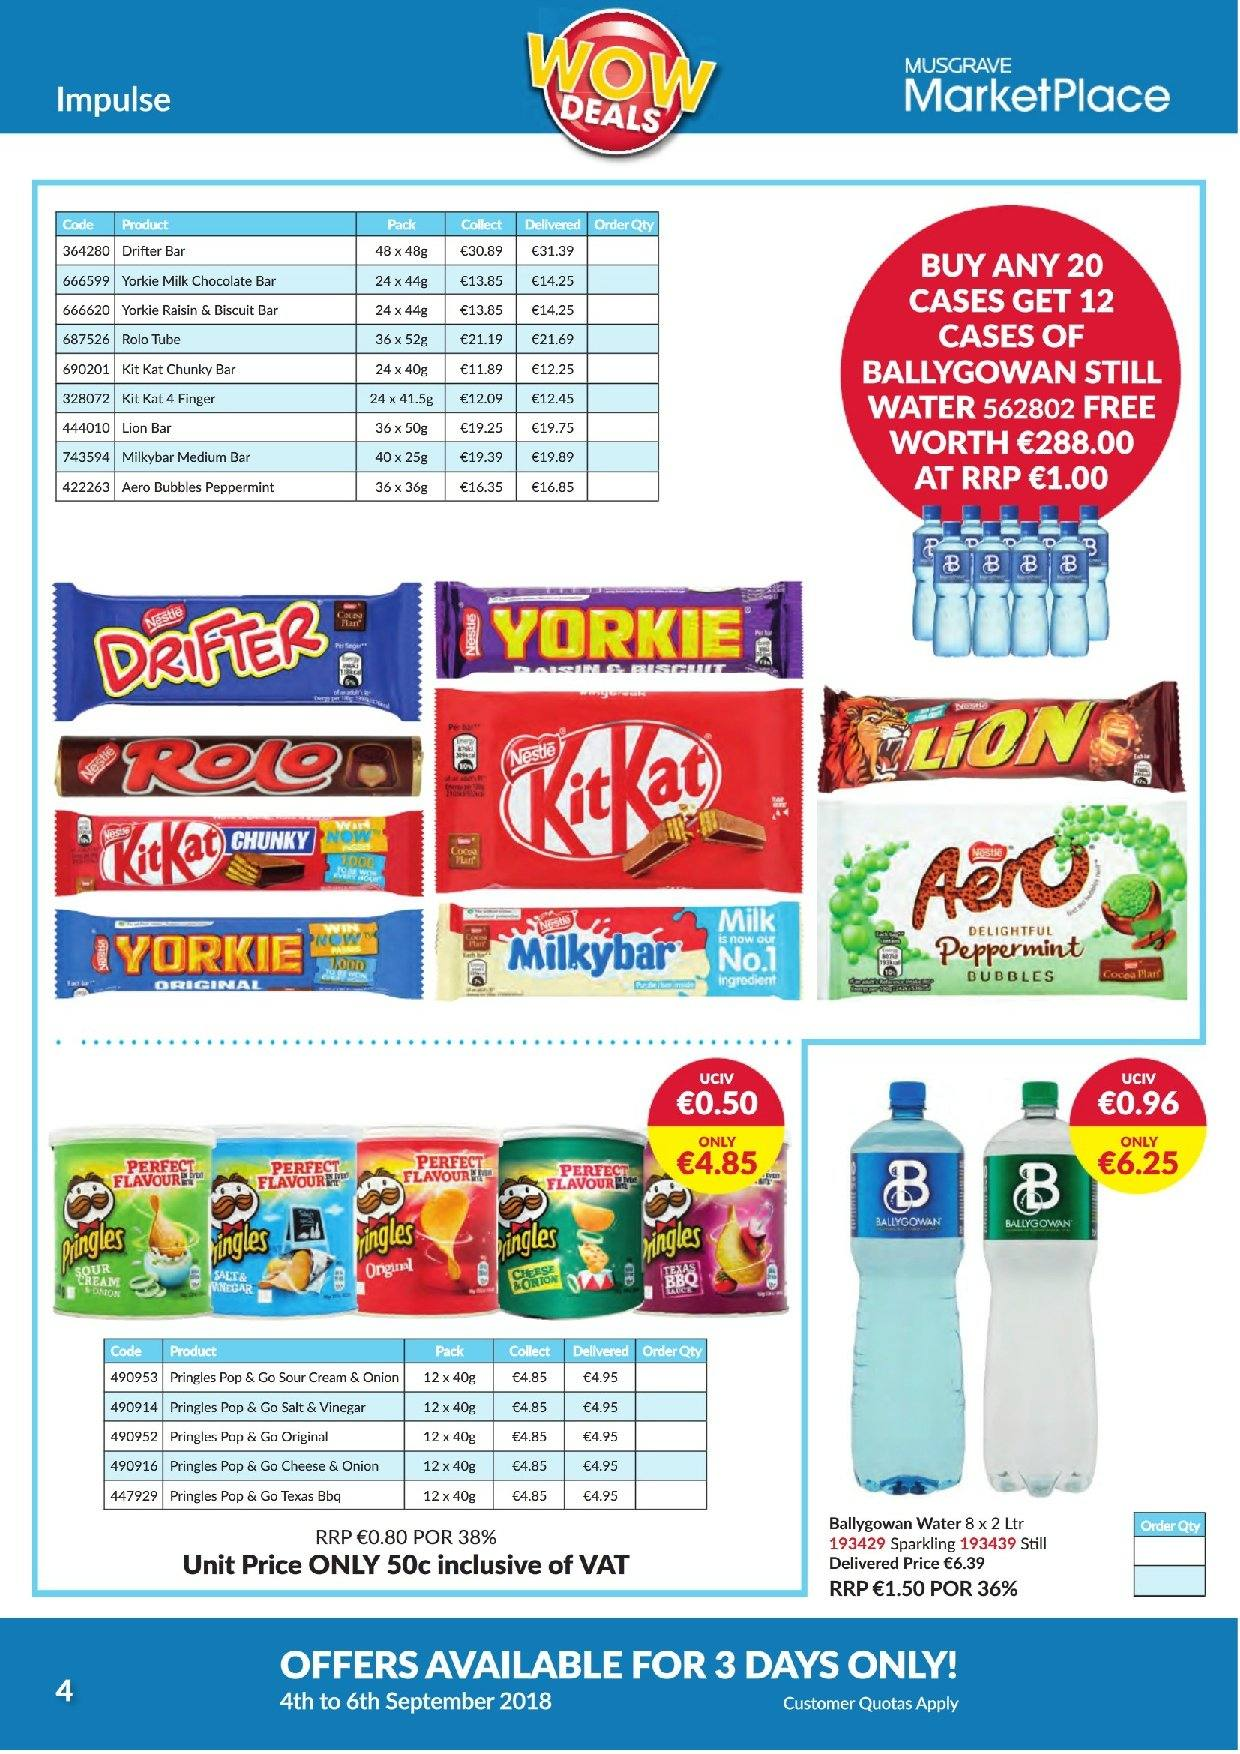 MUSGRAVE Market Place offer  - 4.9.2018 - 6.9.2018 - Sales products - onion, cheese, sour cream, milk chocolate, chocolate, KitKat, Pringles, salt, vinegar, water. Page 4.